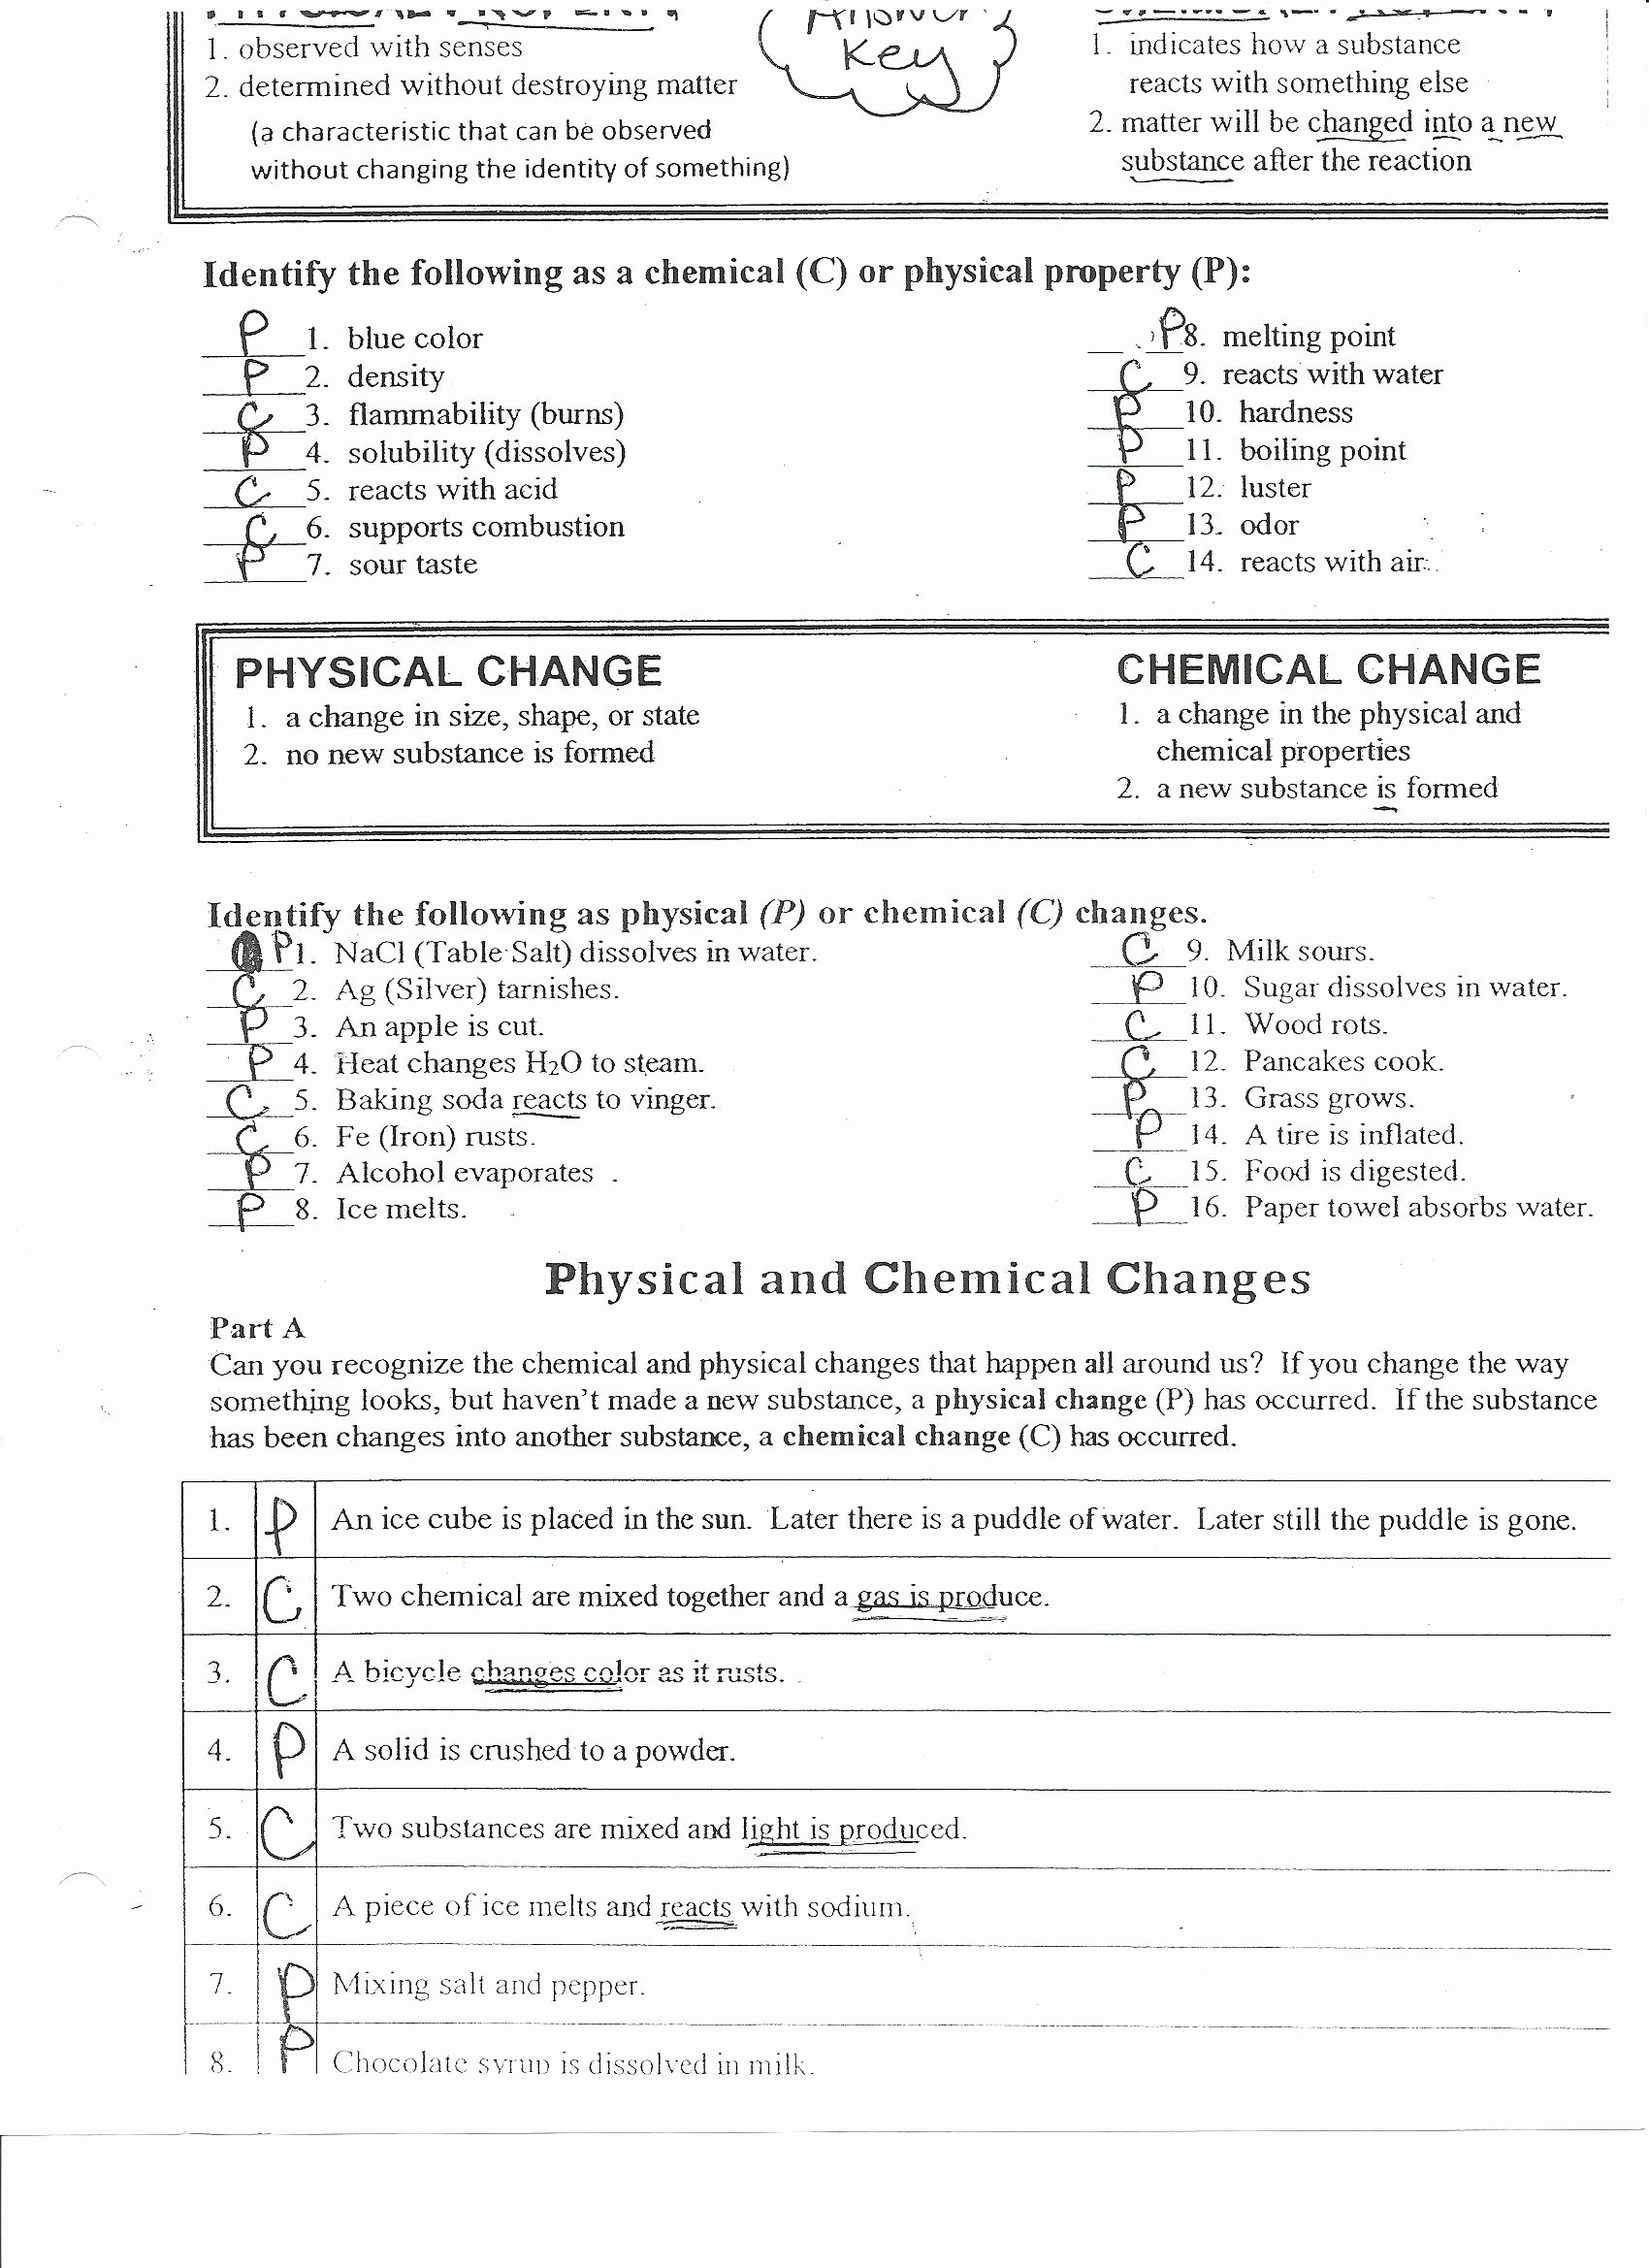 Physical and Chemical Properties Worksheet Awesome Chemistry Worksheets for Grade 9